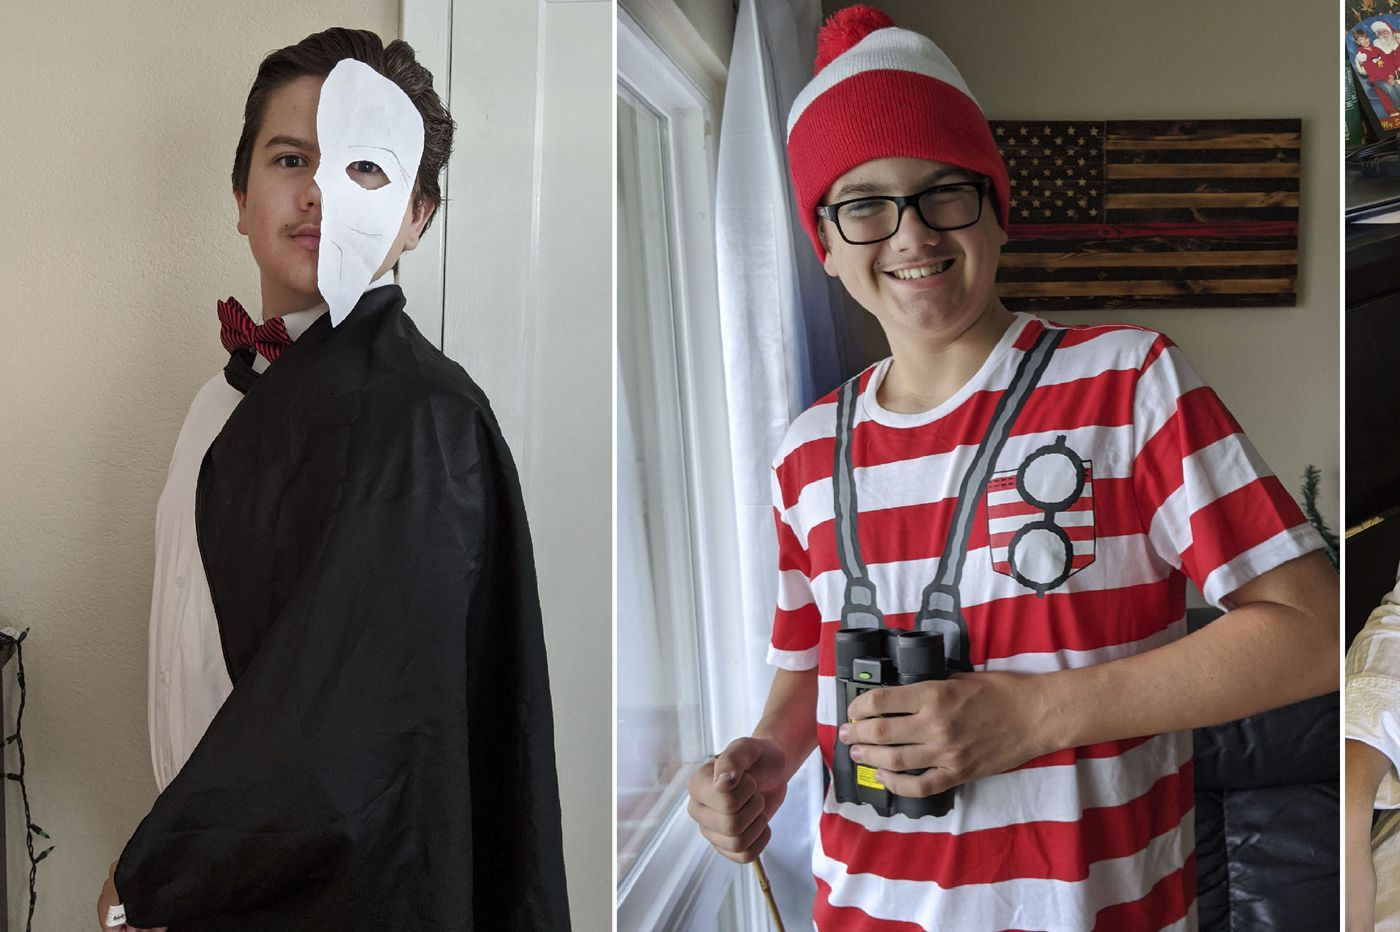 Who's Logan today? This San Francisco-area teen dons fun costumes to cheer his classmates.